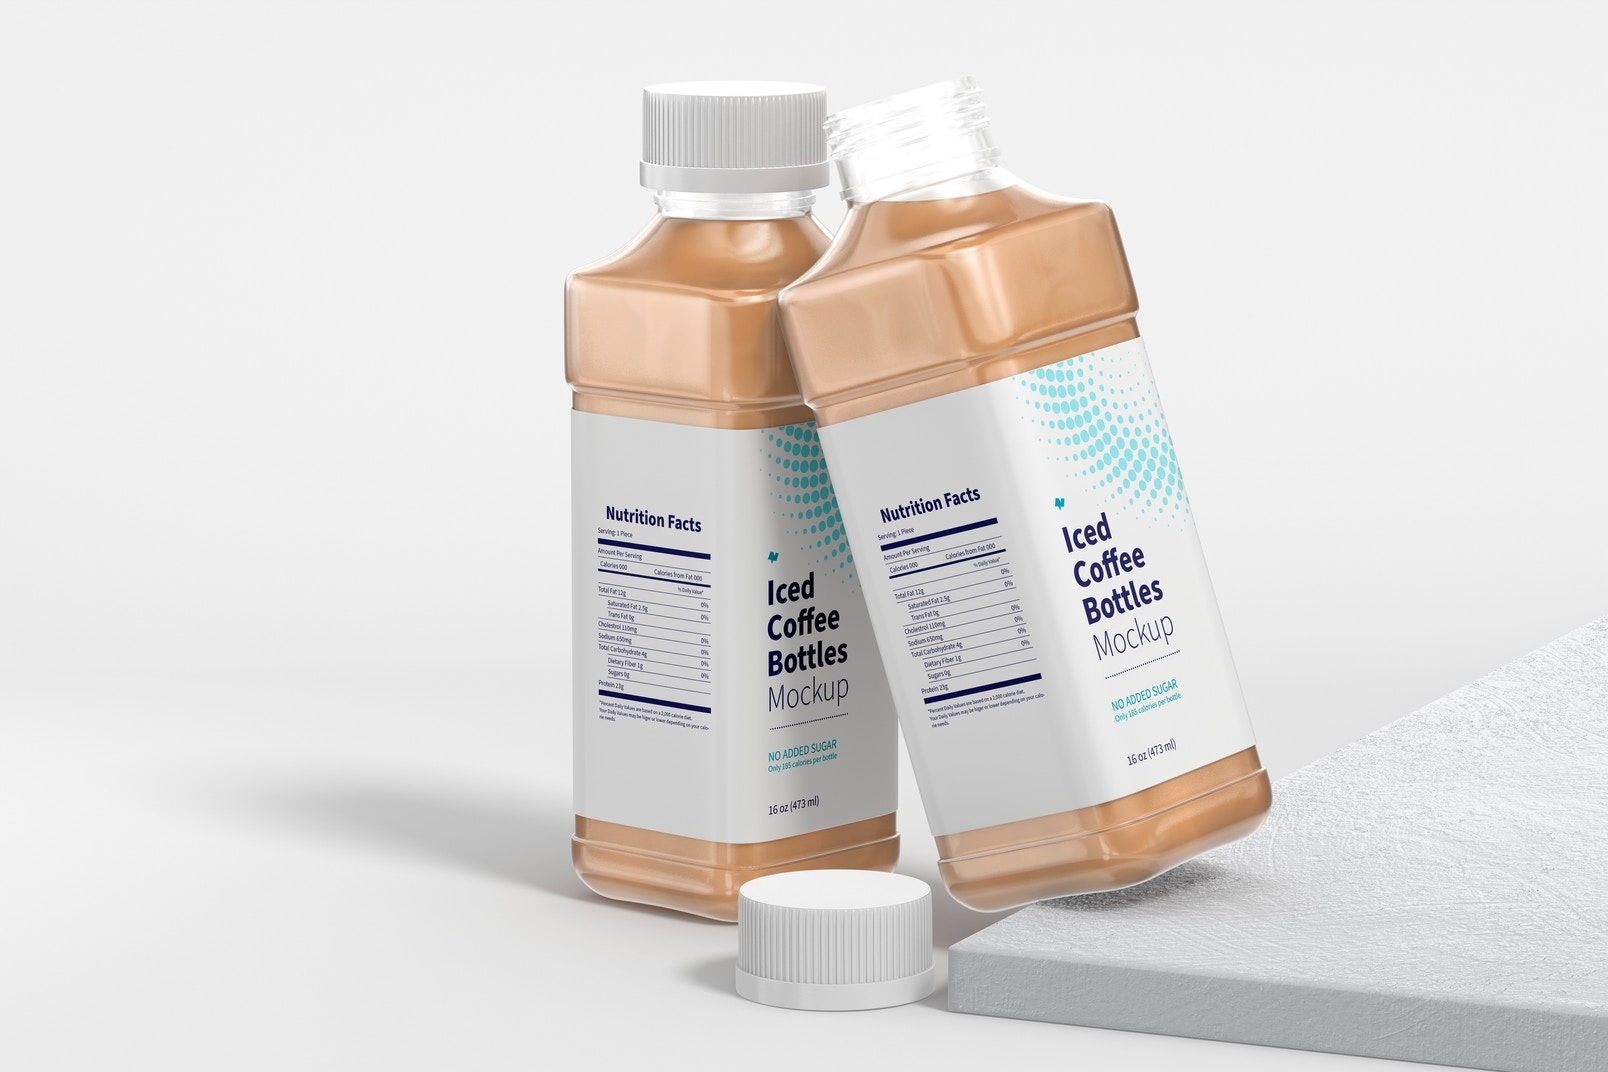 16 oz Iced Coffee Bottles Mockup, Opened and Closed